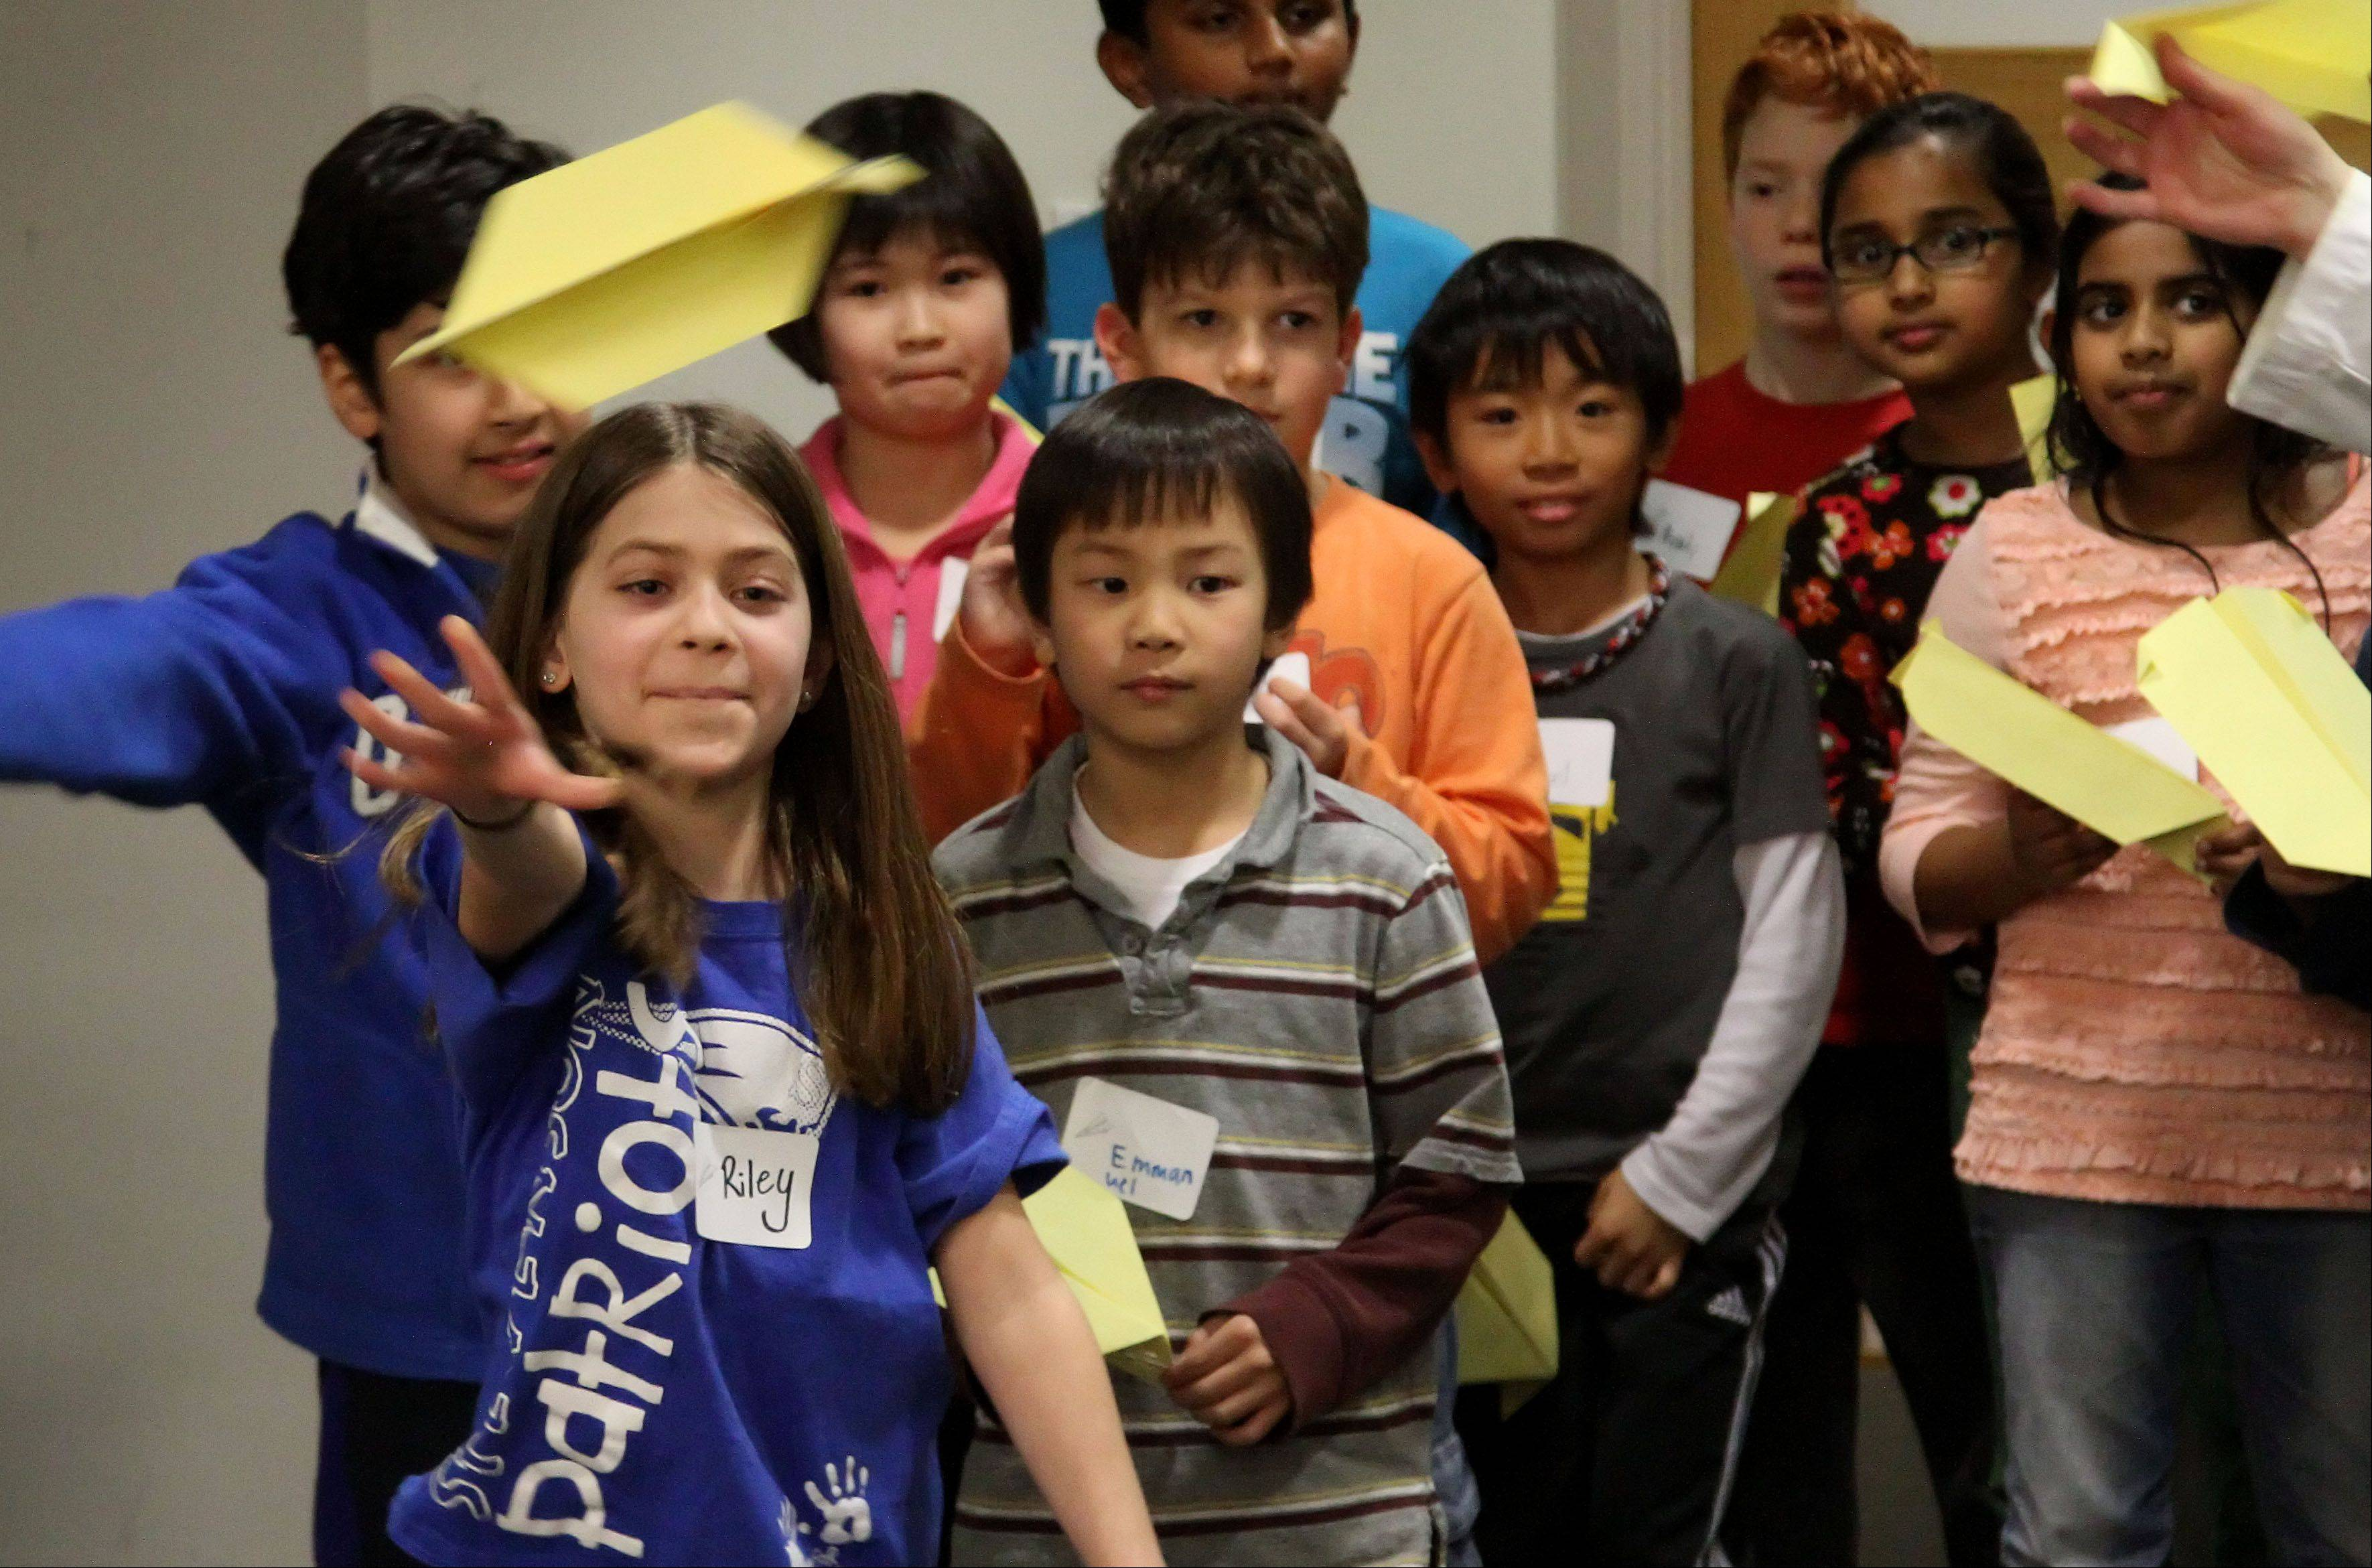 8-year-old Riley Heydenburg of Buffalo Grove launches a paper airplane during a program called Science Sleuths at Vernon Area Public Library.